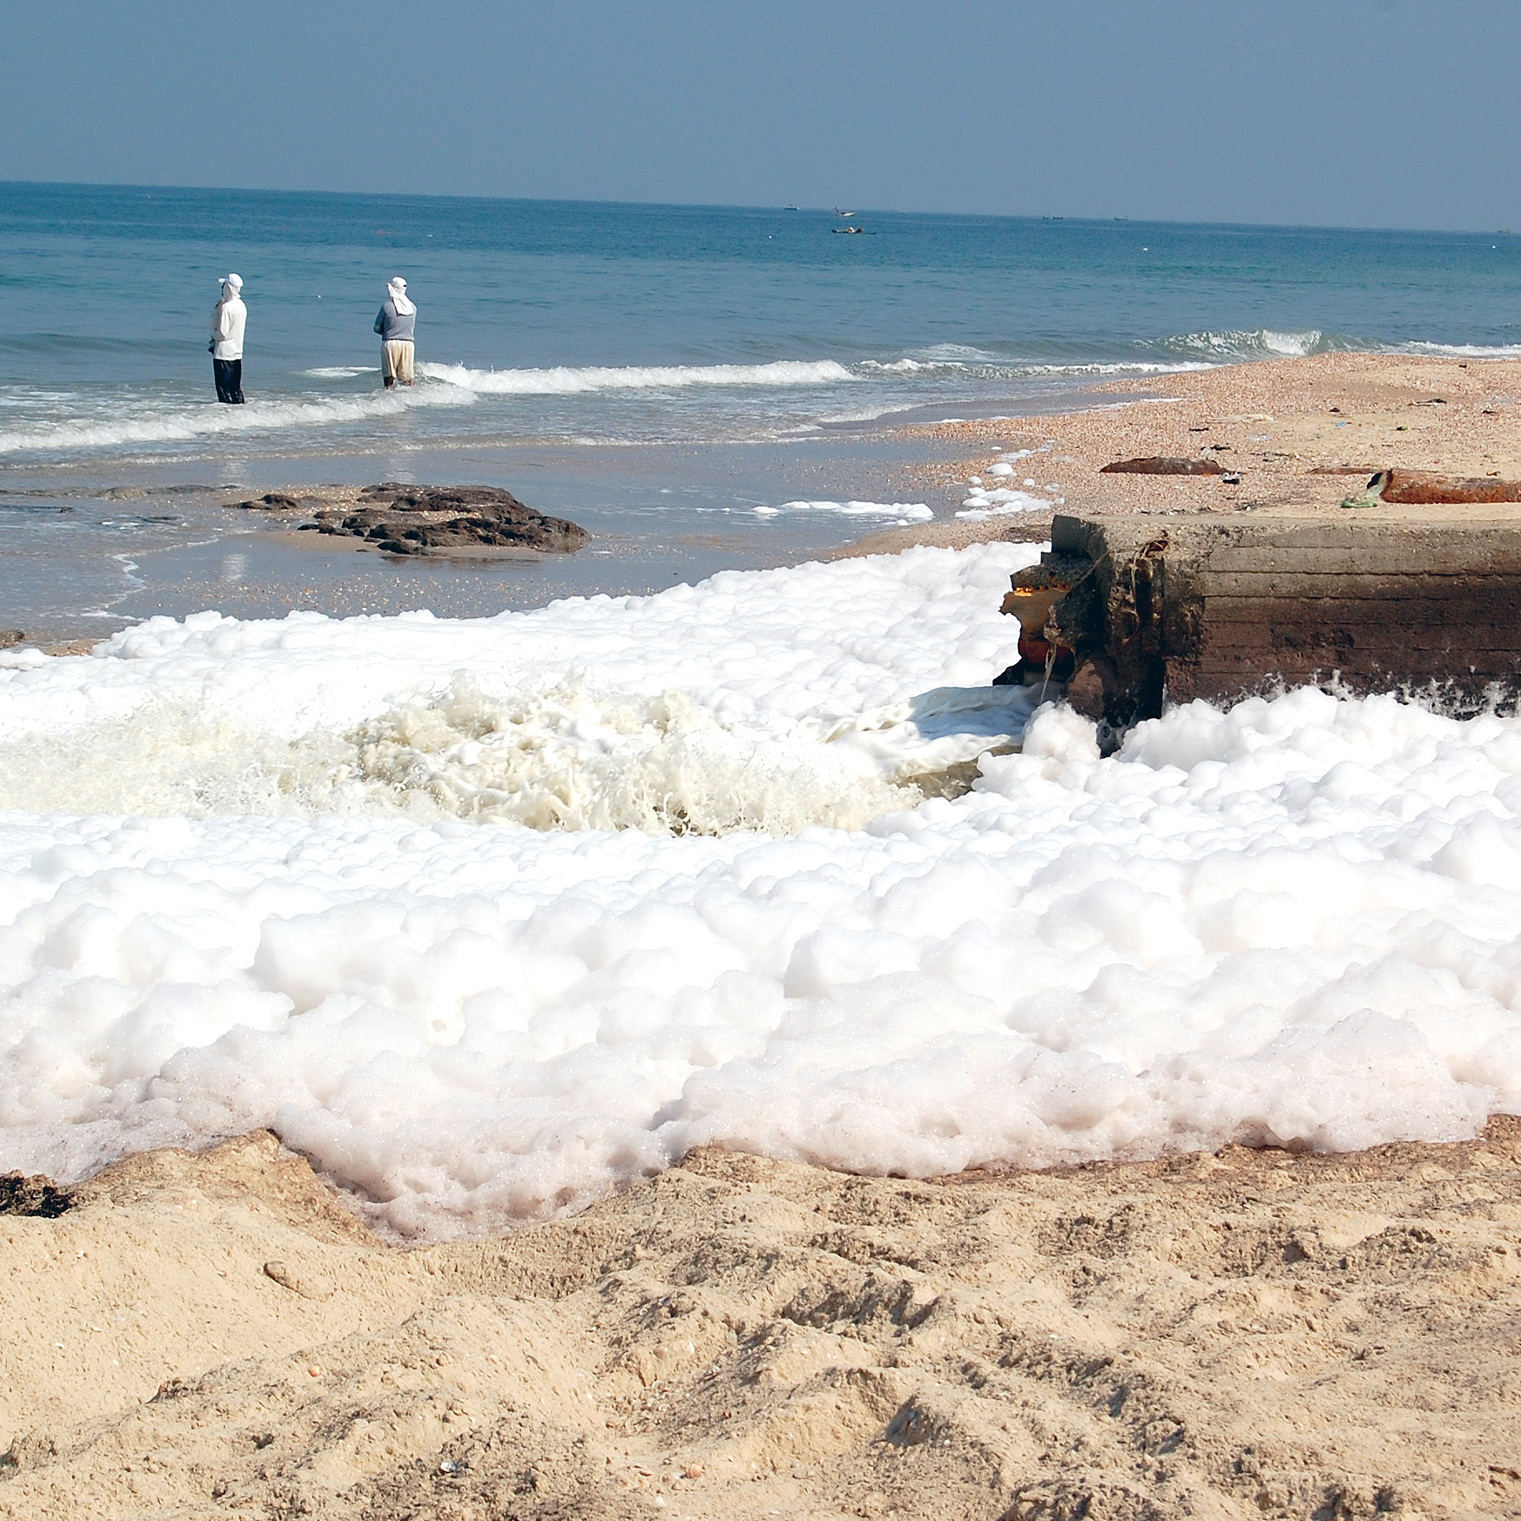 Untreated sewage from Gaza flows directly into the Mediterranean Sea. This has long been a problem, but authorities say the amount of untreated sewage being dumped into the sea had been falling before the current fuel crisis.